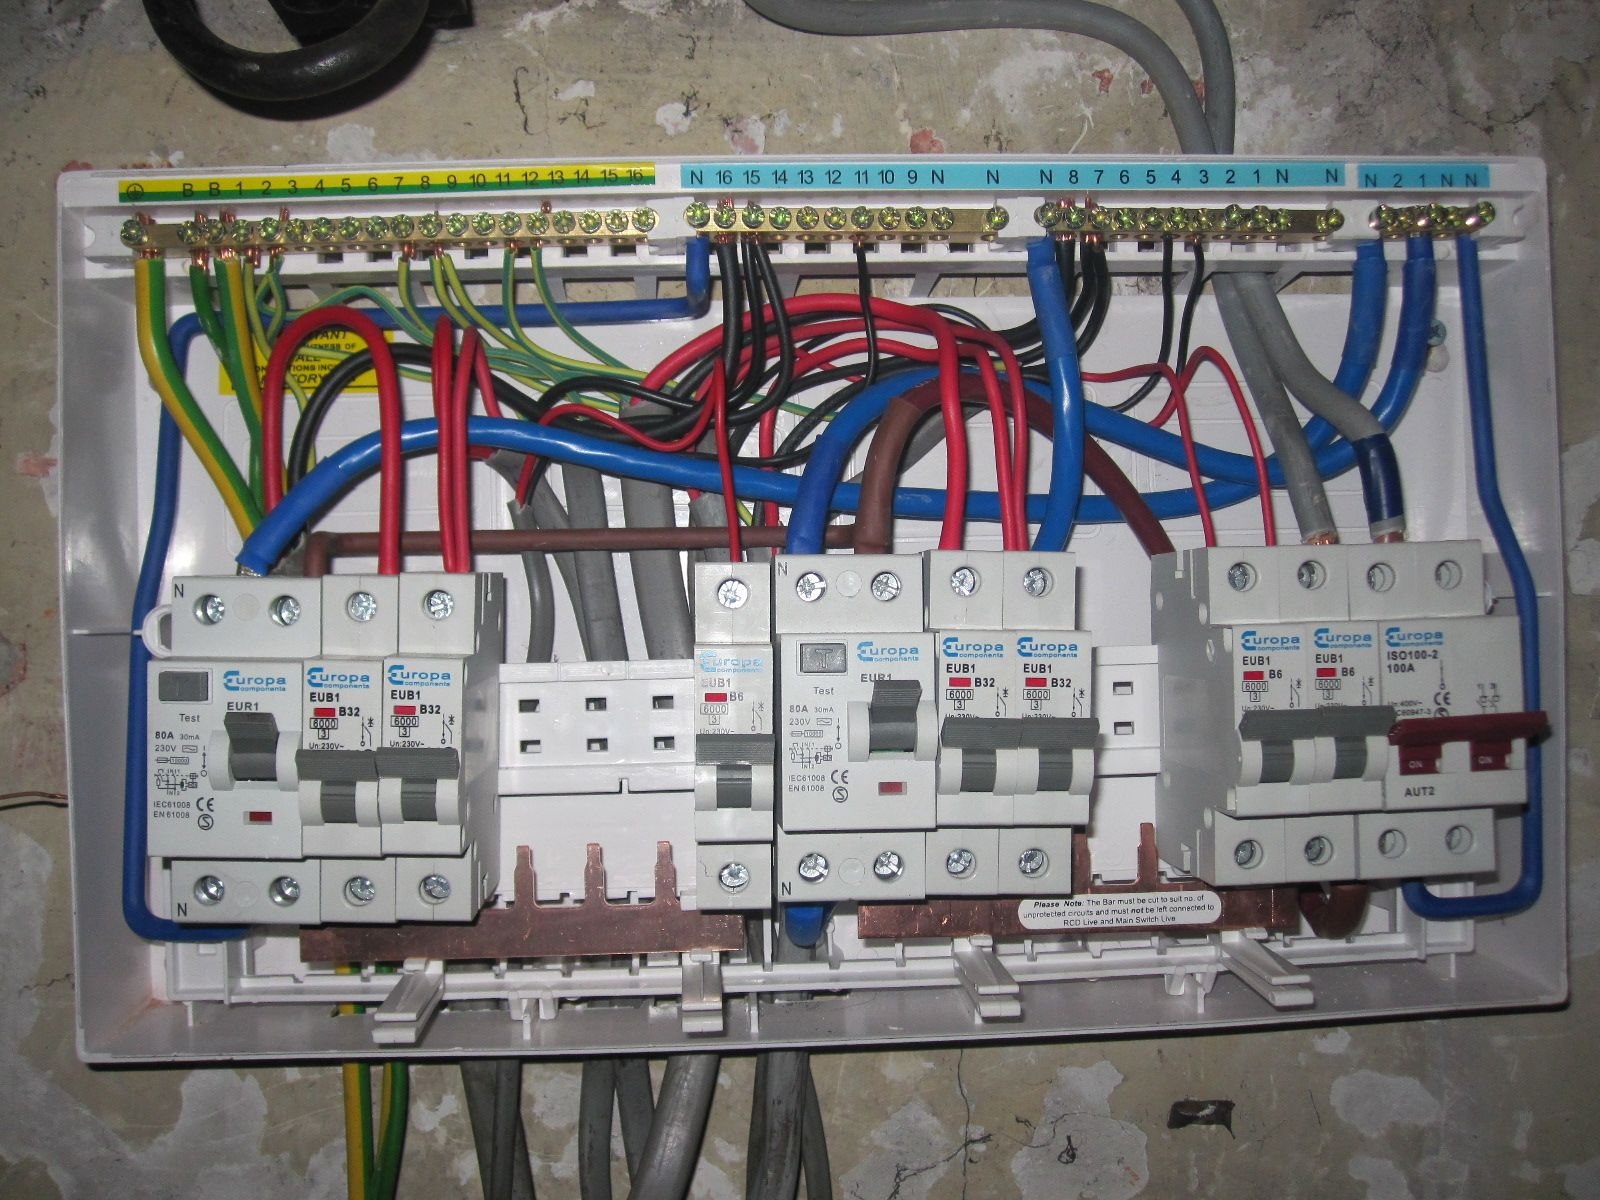 shed consumer unit wiring diagram lovely building management system pin by myhiredpro on home electrical pinterest